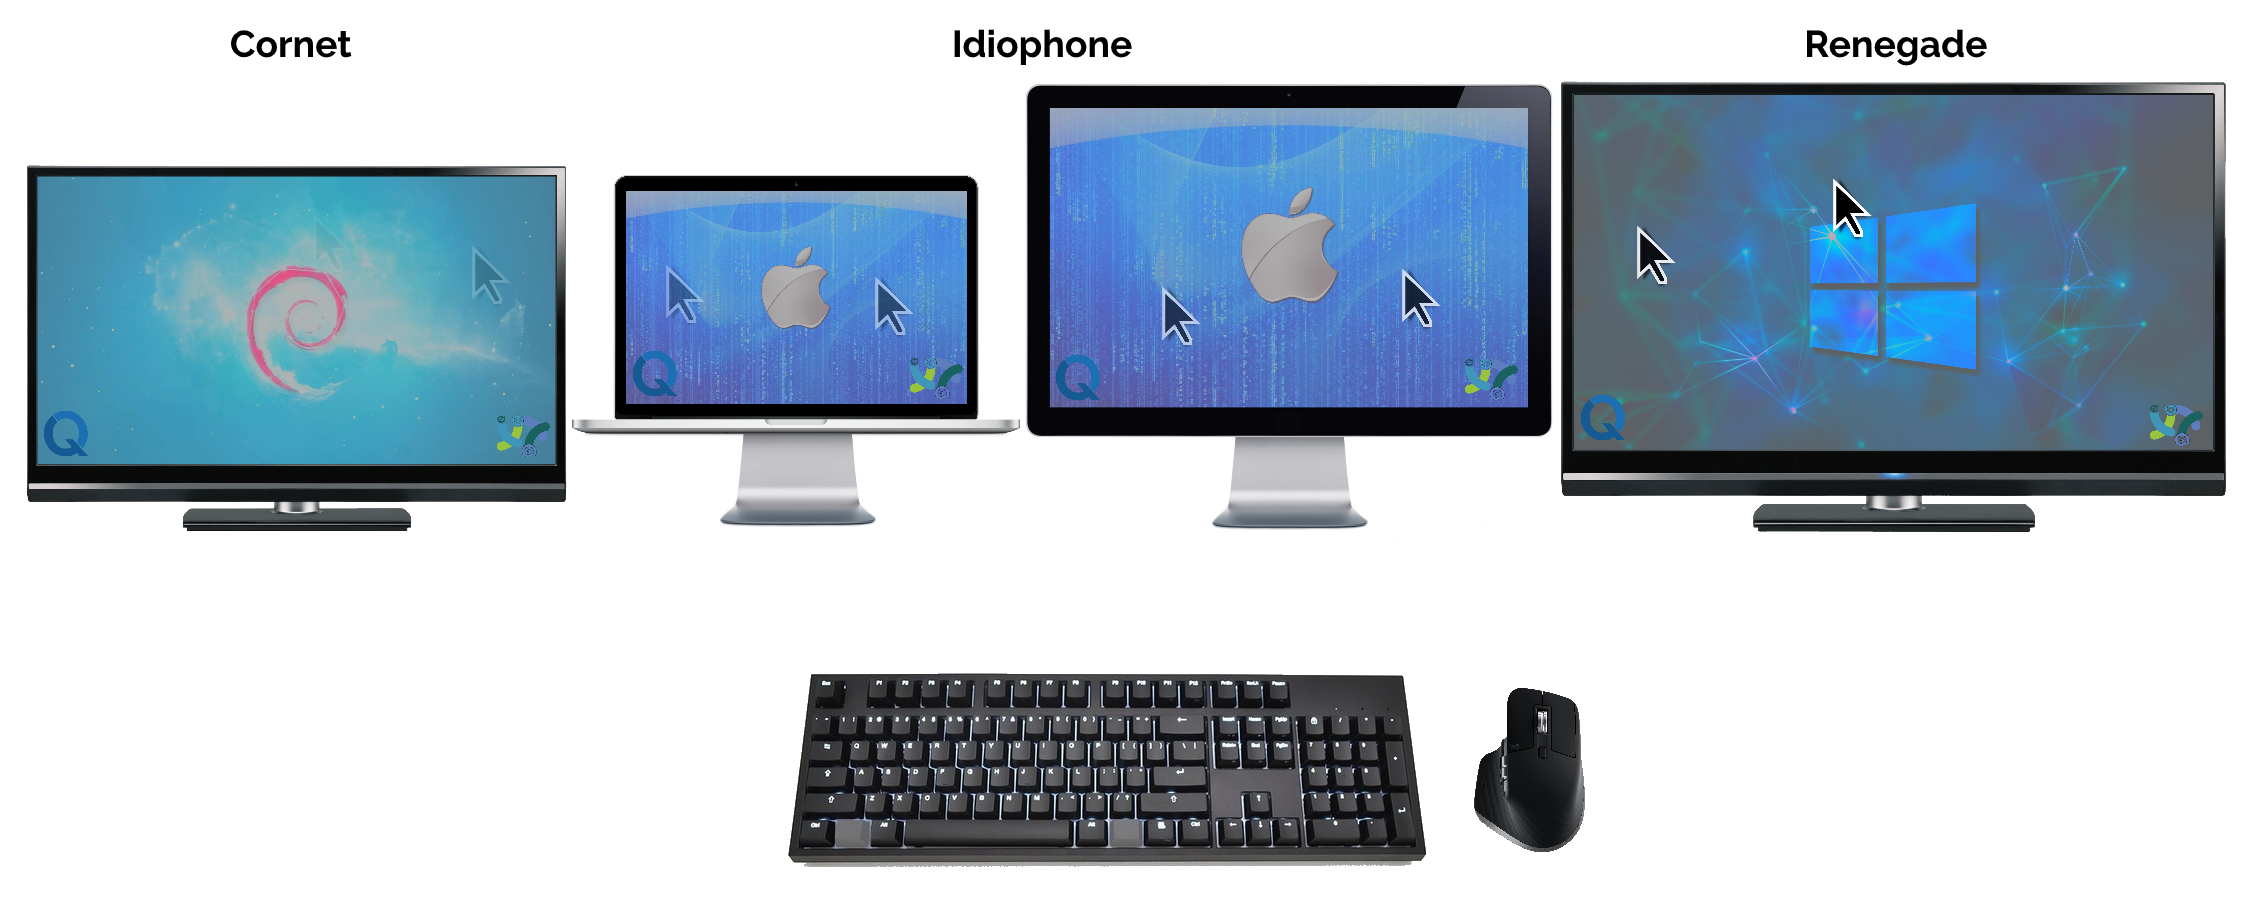 Illustration showing a Debian desktop called Cornet, a Mac laptop with attached monitor called Idiophone, and a Windows desktop called Renegade. All three share a single keyboard and mouse using Barrier.